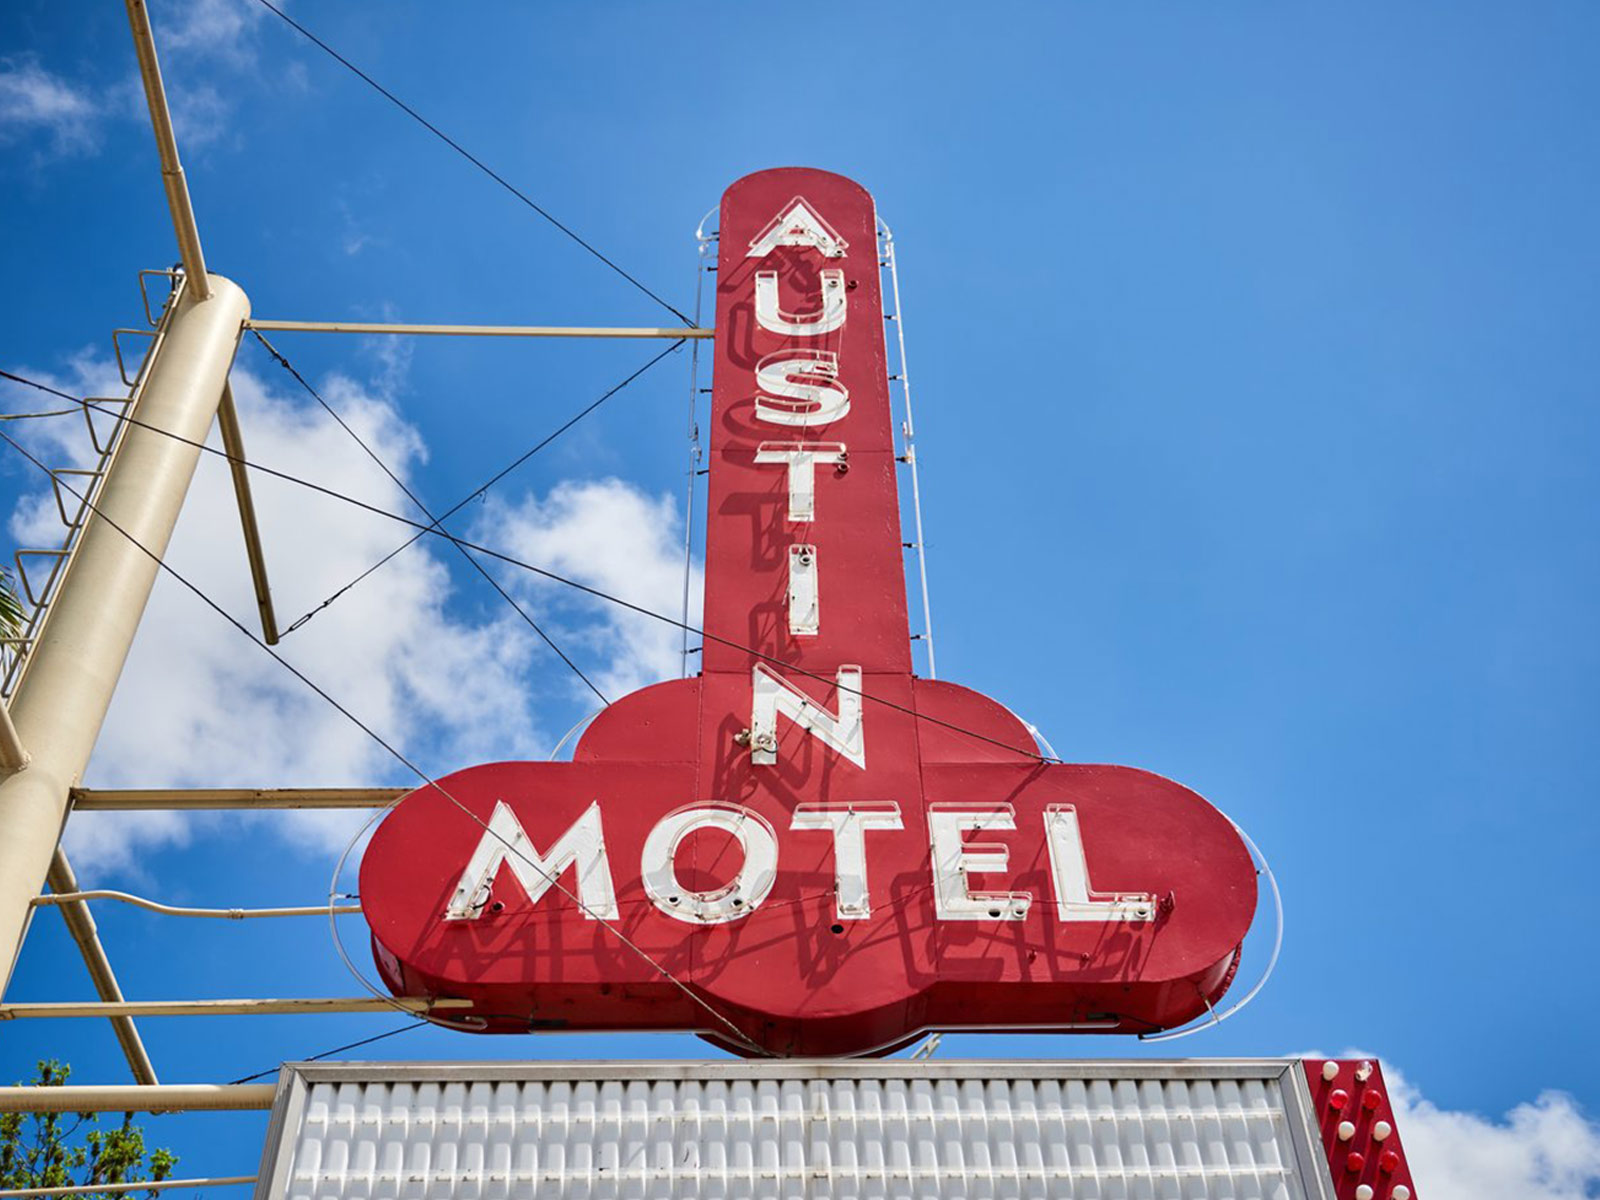 The Austin Motel neon sign from below